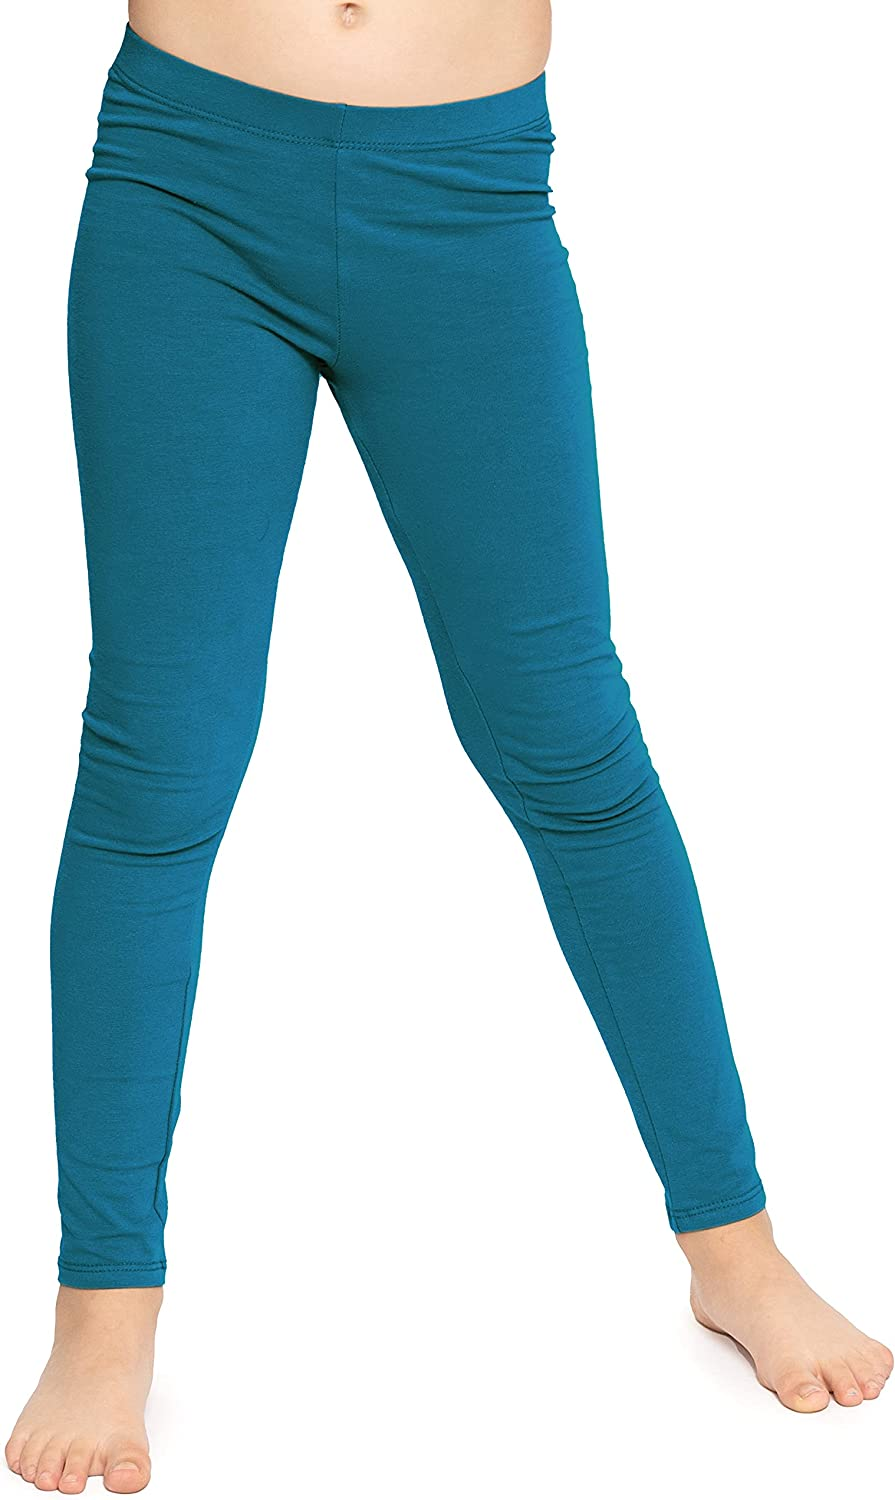 Oh So Soft Solid Leggings New Shipping Free Shipping Girl's Print and Max 72% OFF